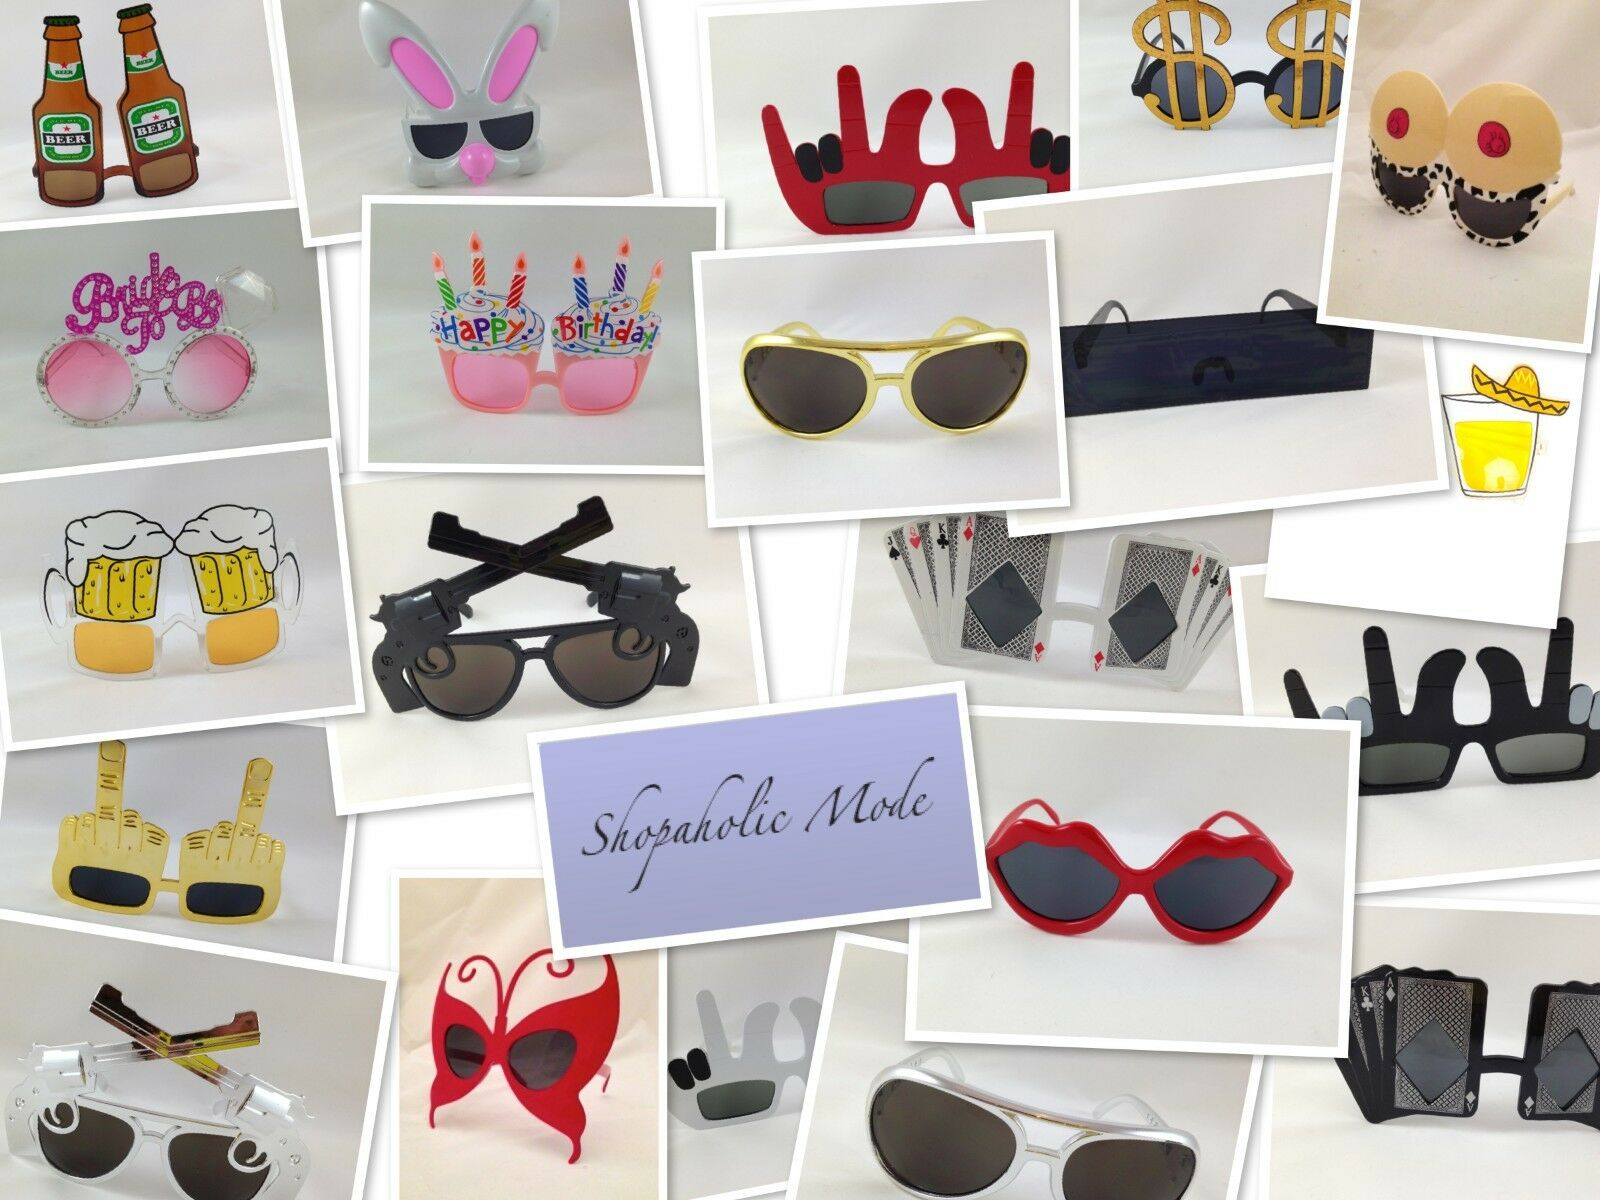 1 x Novelty Party Dress up Glasses - 20+ designs to choose from